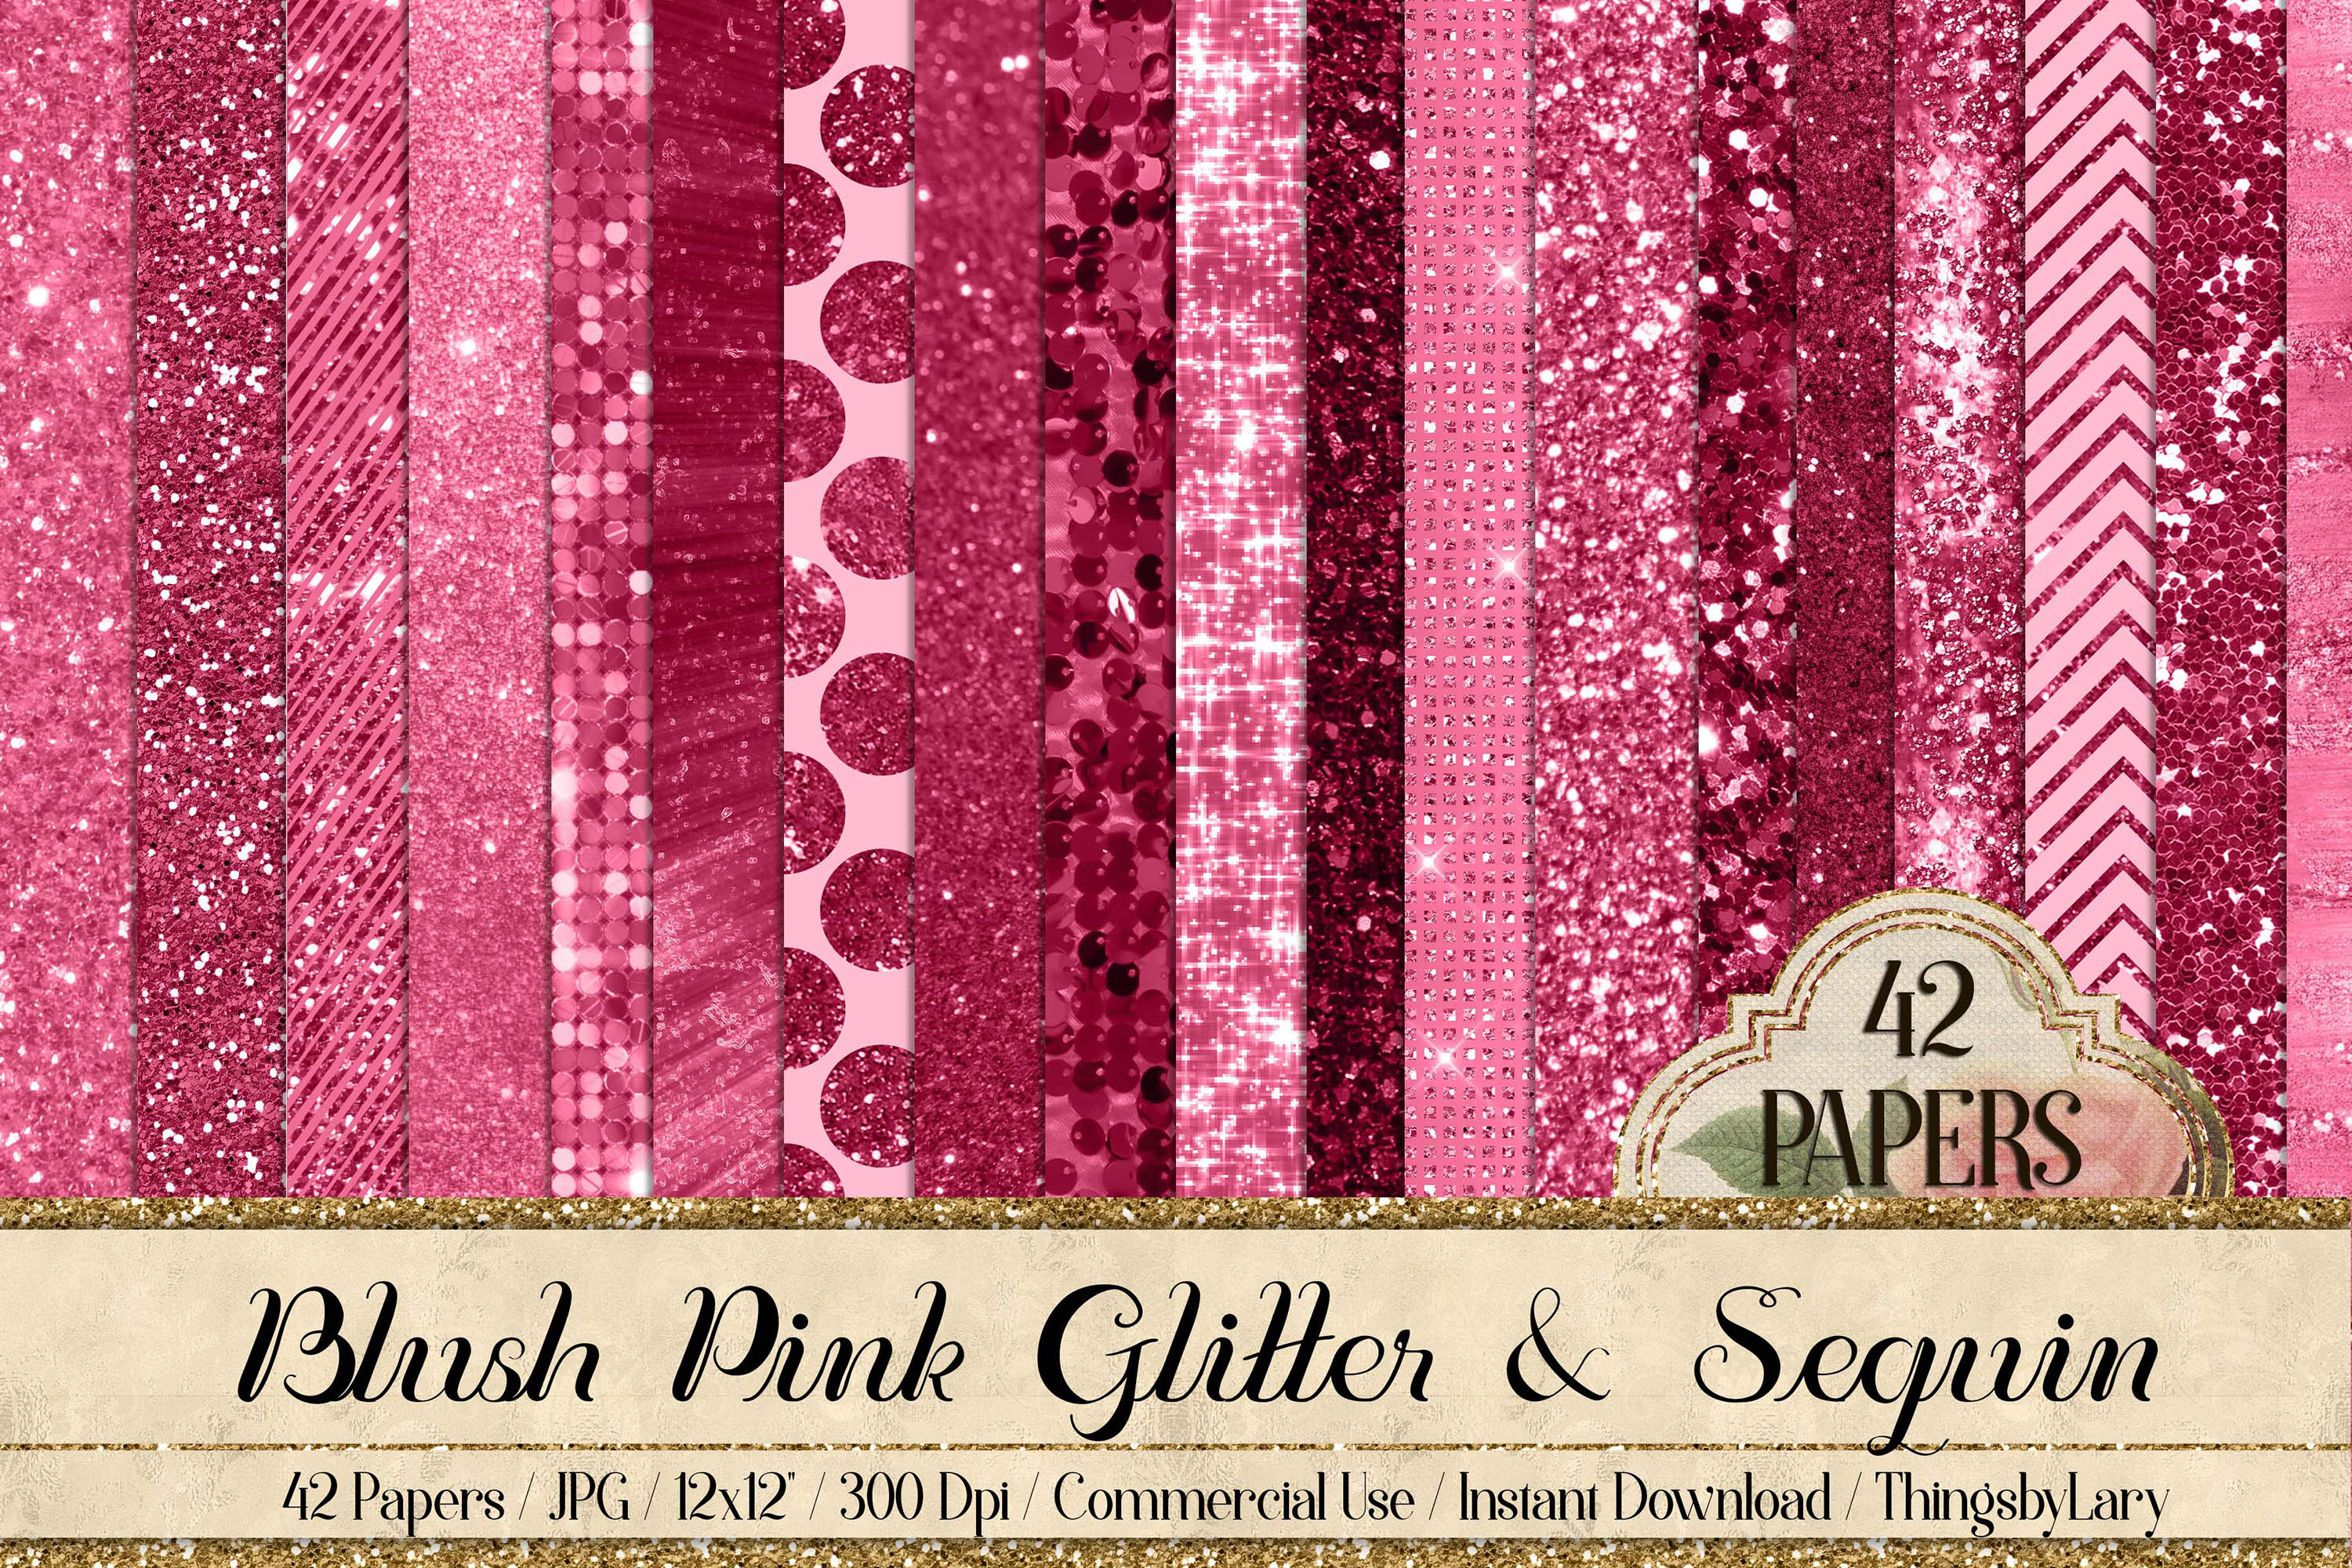 42 Blush Pink Princess Baby Glitter Sequin Digital Papers example image 1